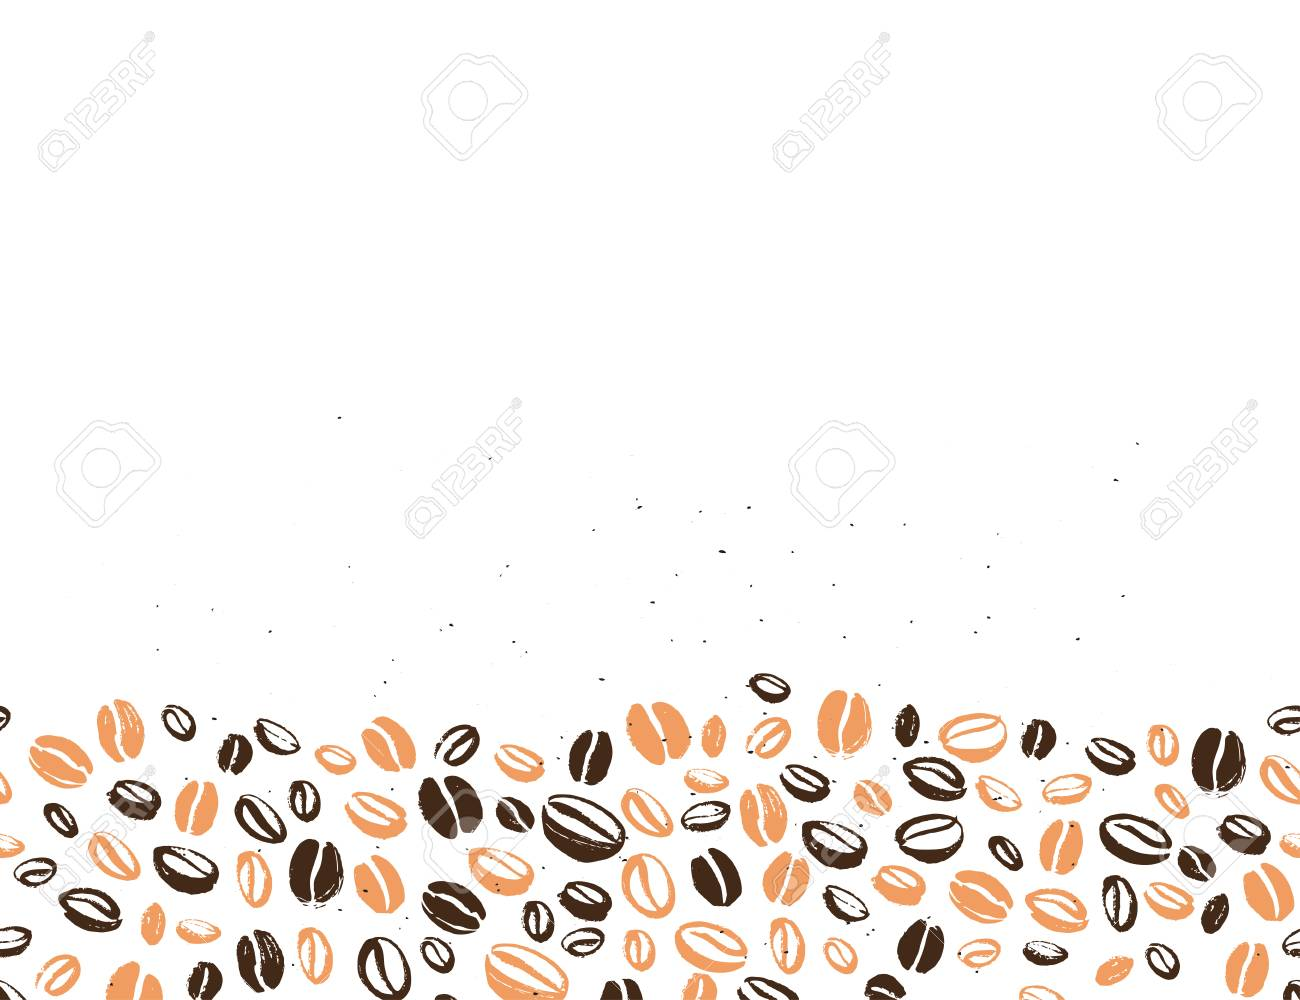 coffee backdrop design with hand drawn coffee beans isolated royalty free cliparts vectors and stock illustration image 98907539 coffee backdrop design with hand drawn coffee beans isolated